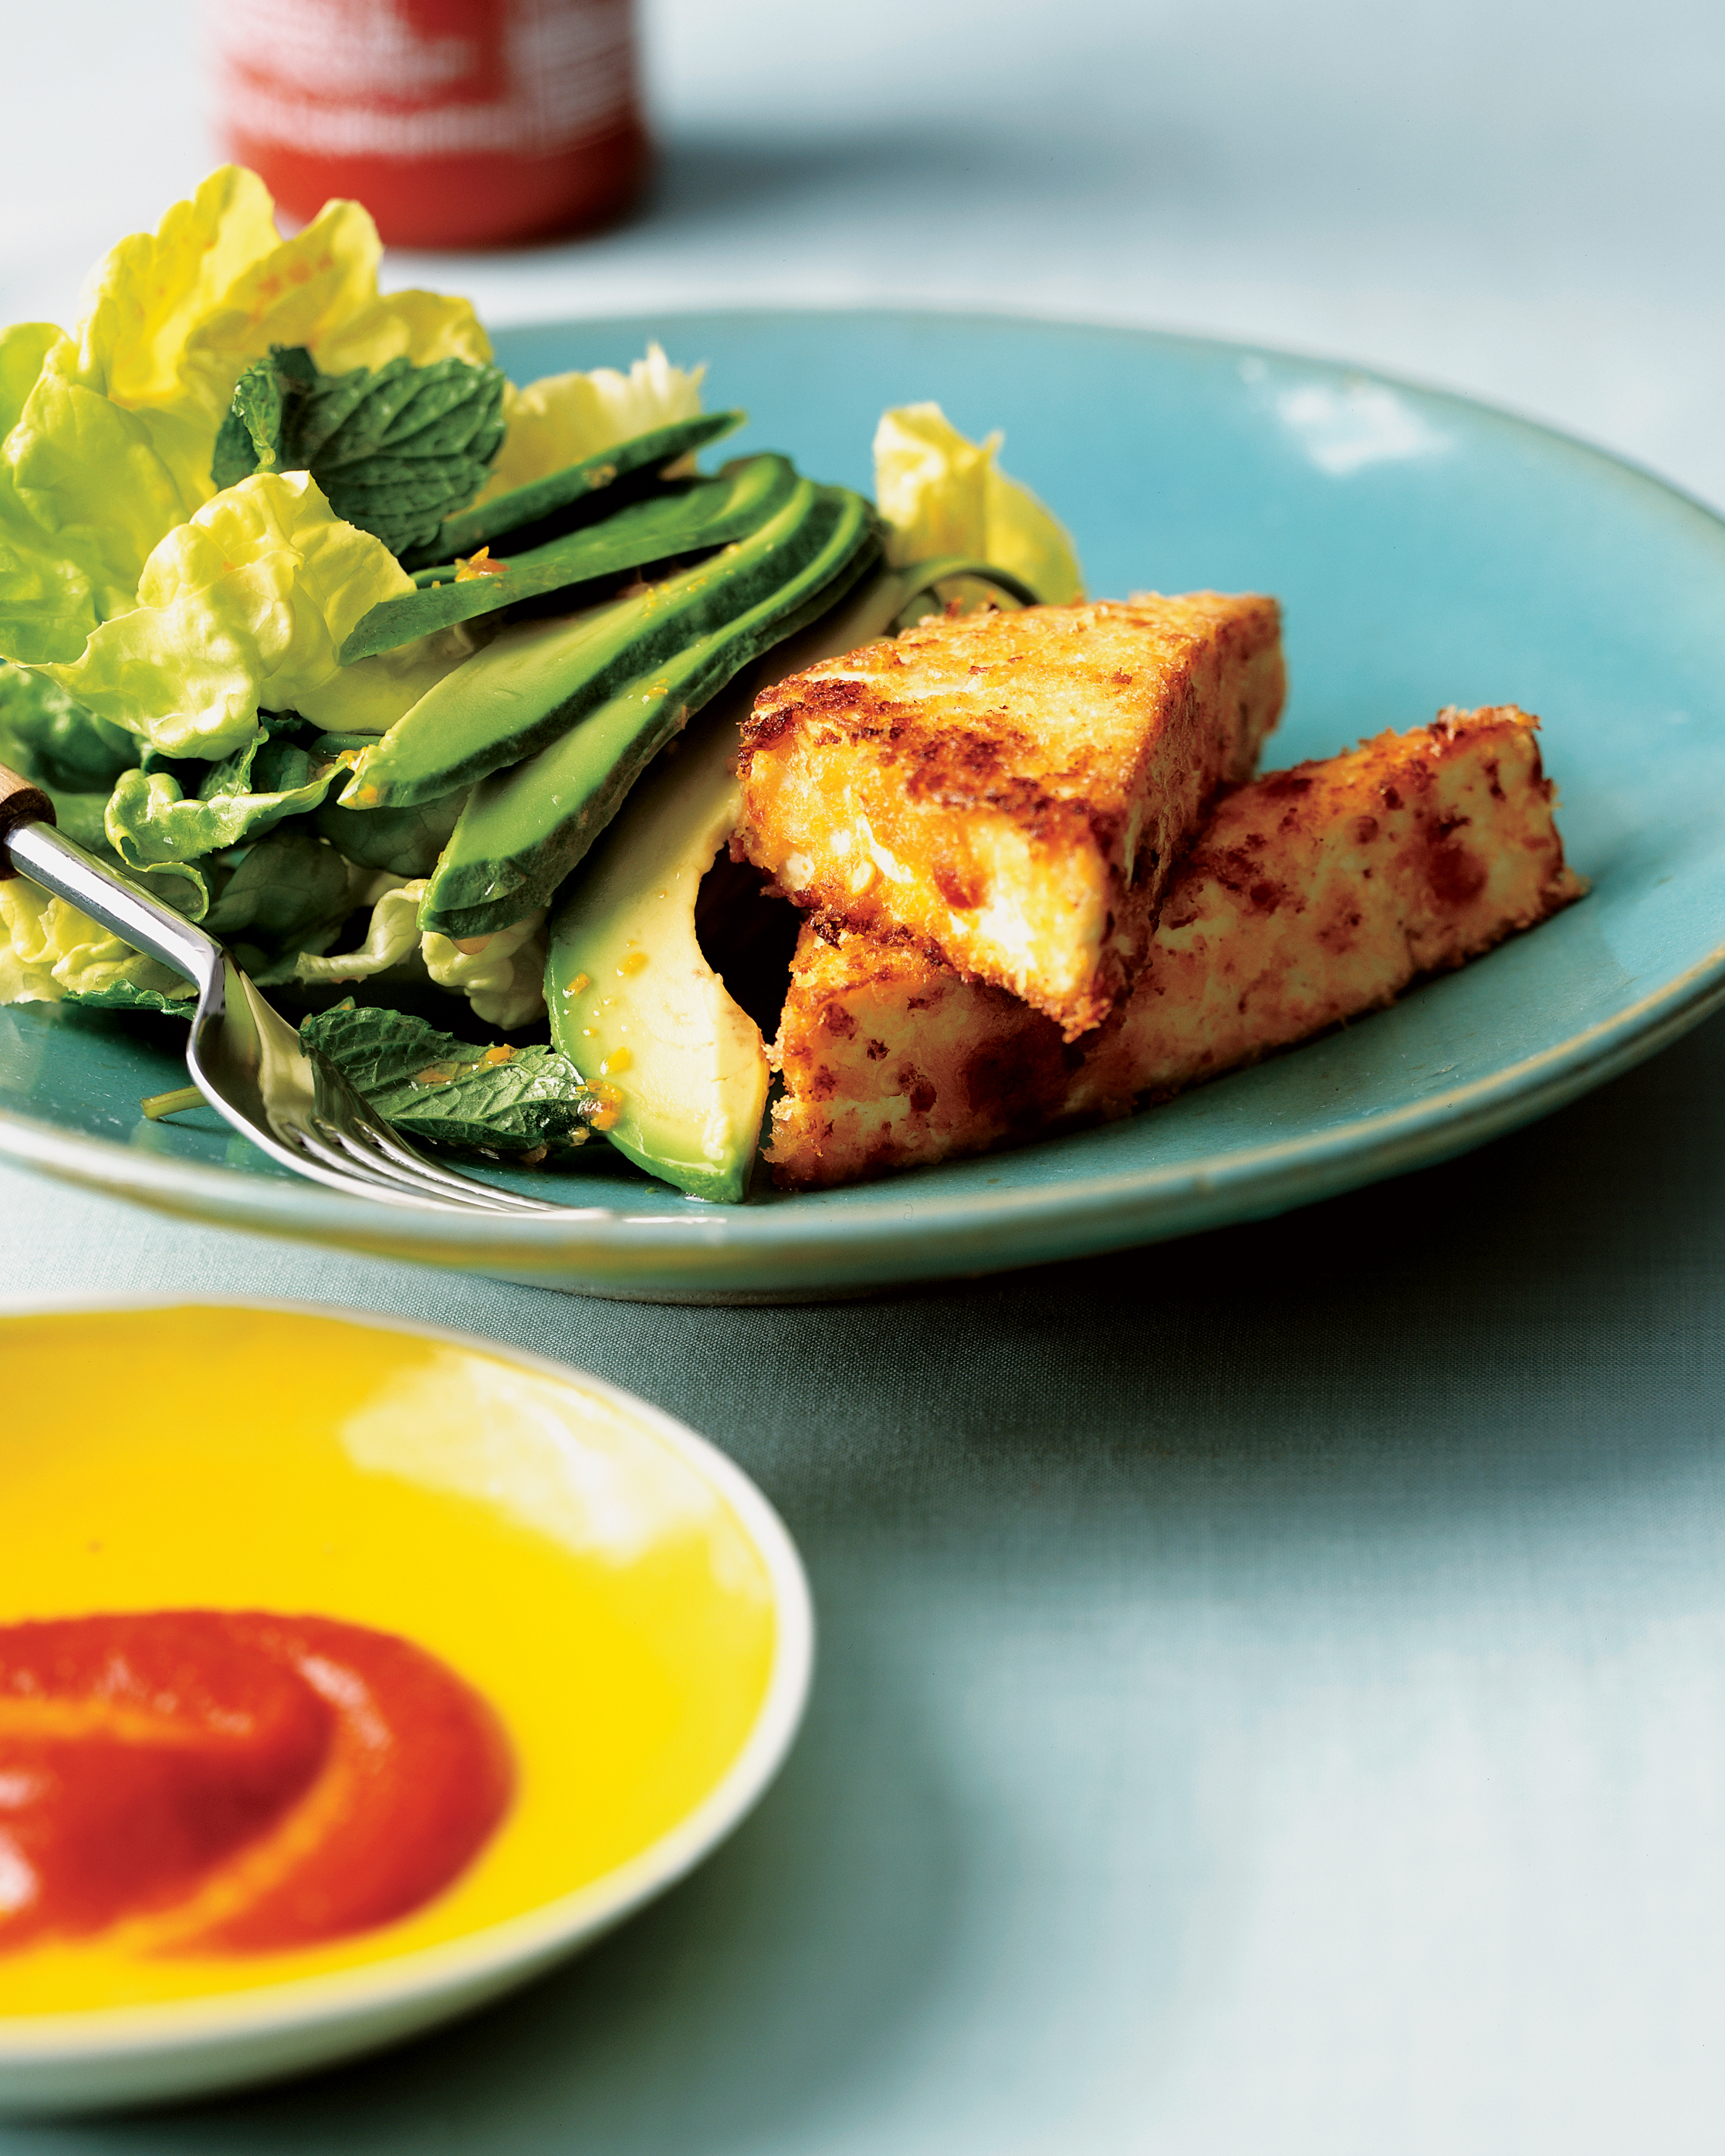 Spicy, Crisp Tofu on Mint-Avocado Salad